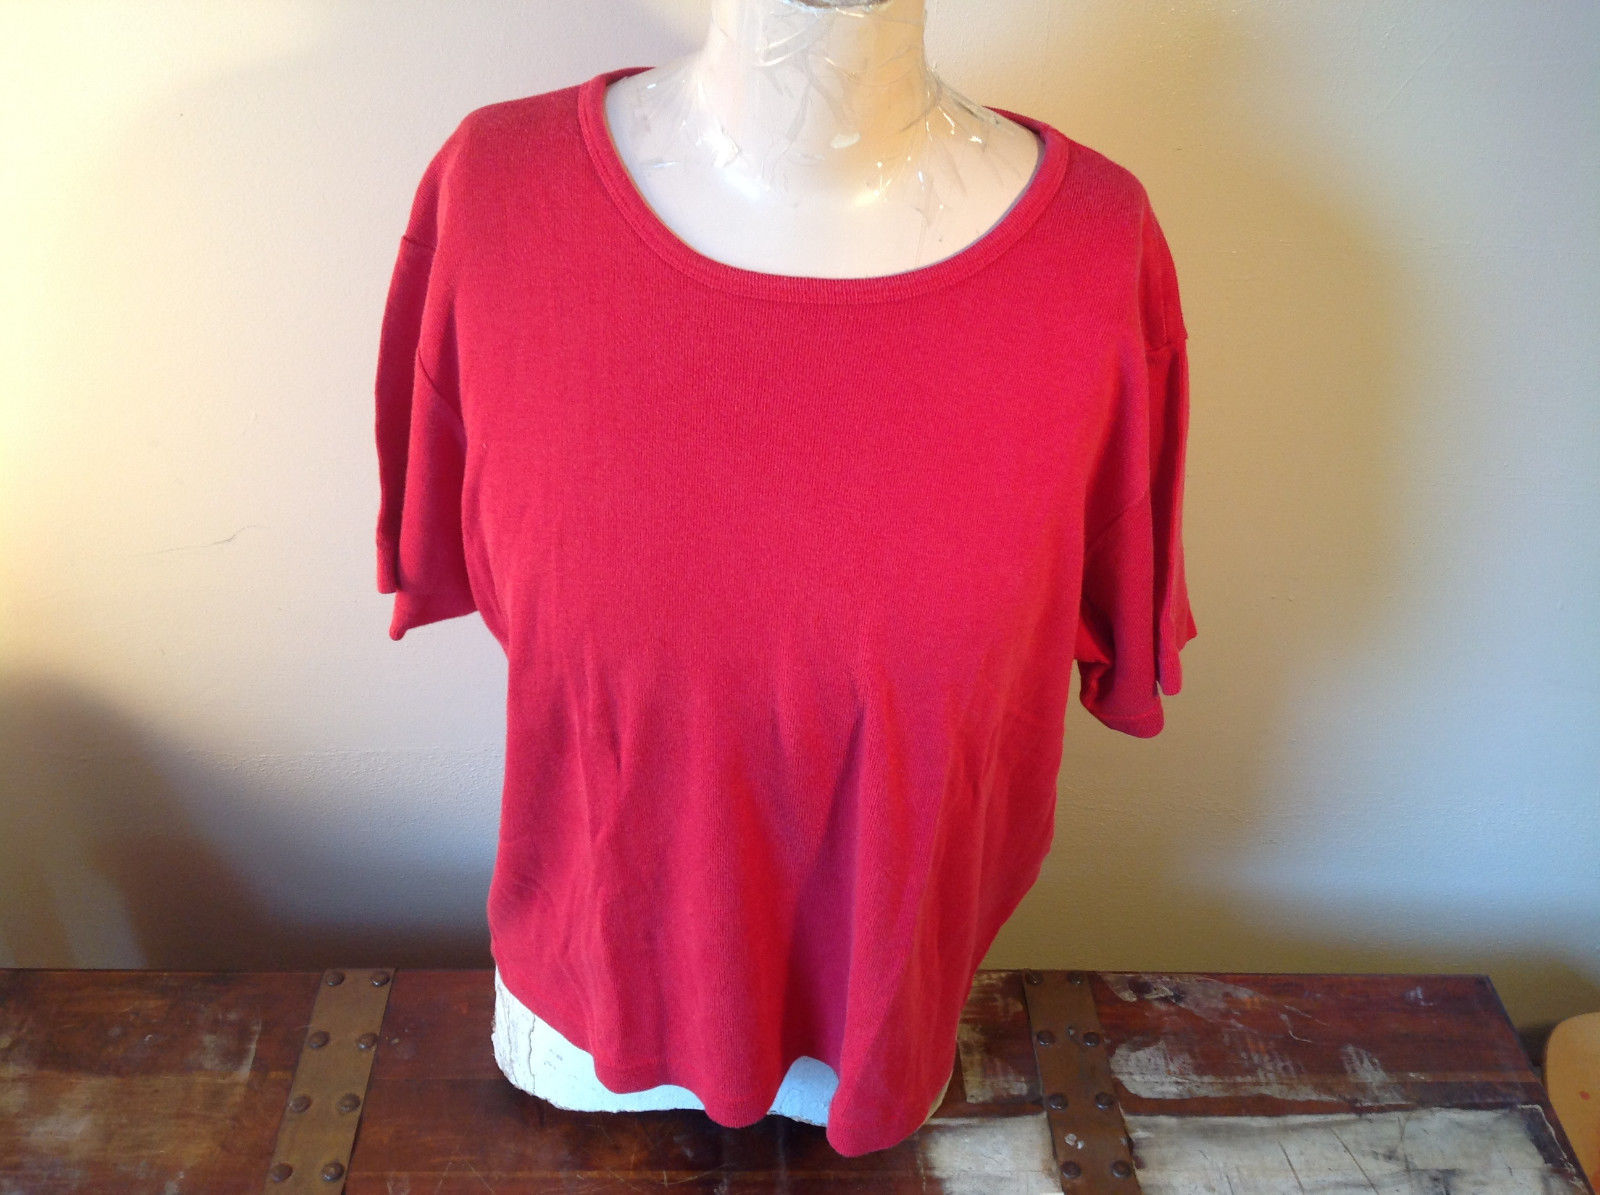 Pretty Red Short Sleeve Top Loose Crew Neck by Venezia Jeans Size 18 to 20